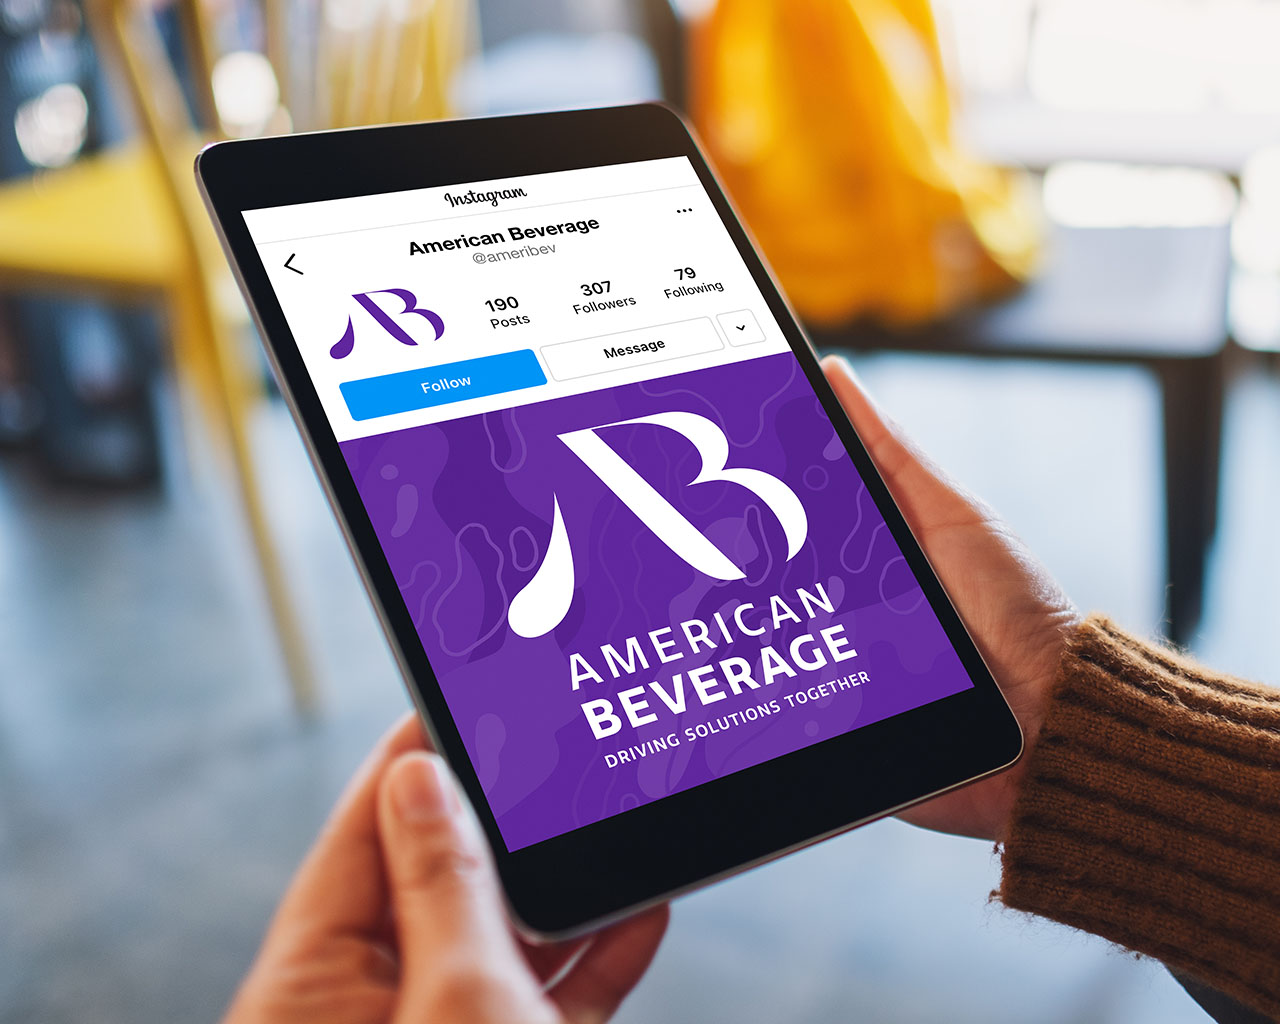 Hands holding a tablet with the American Beverage Instagram page on screen